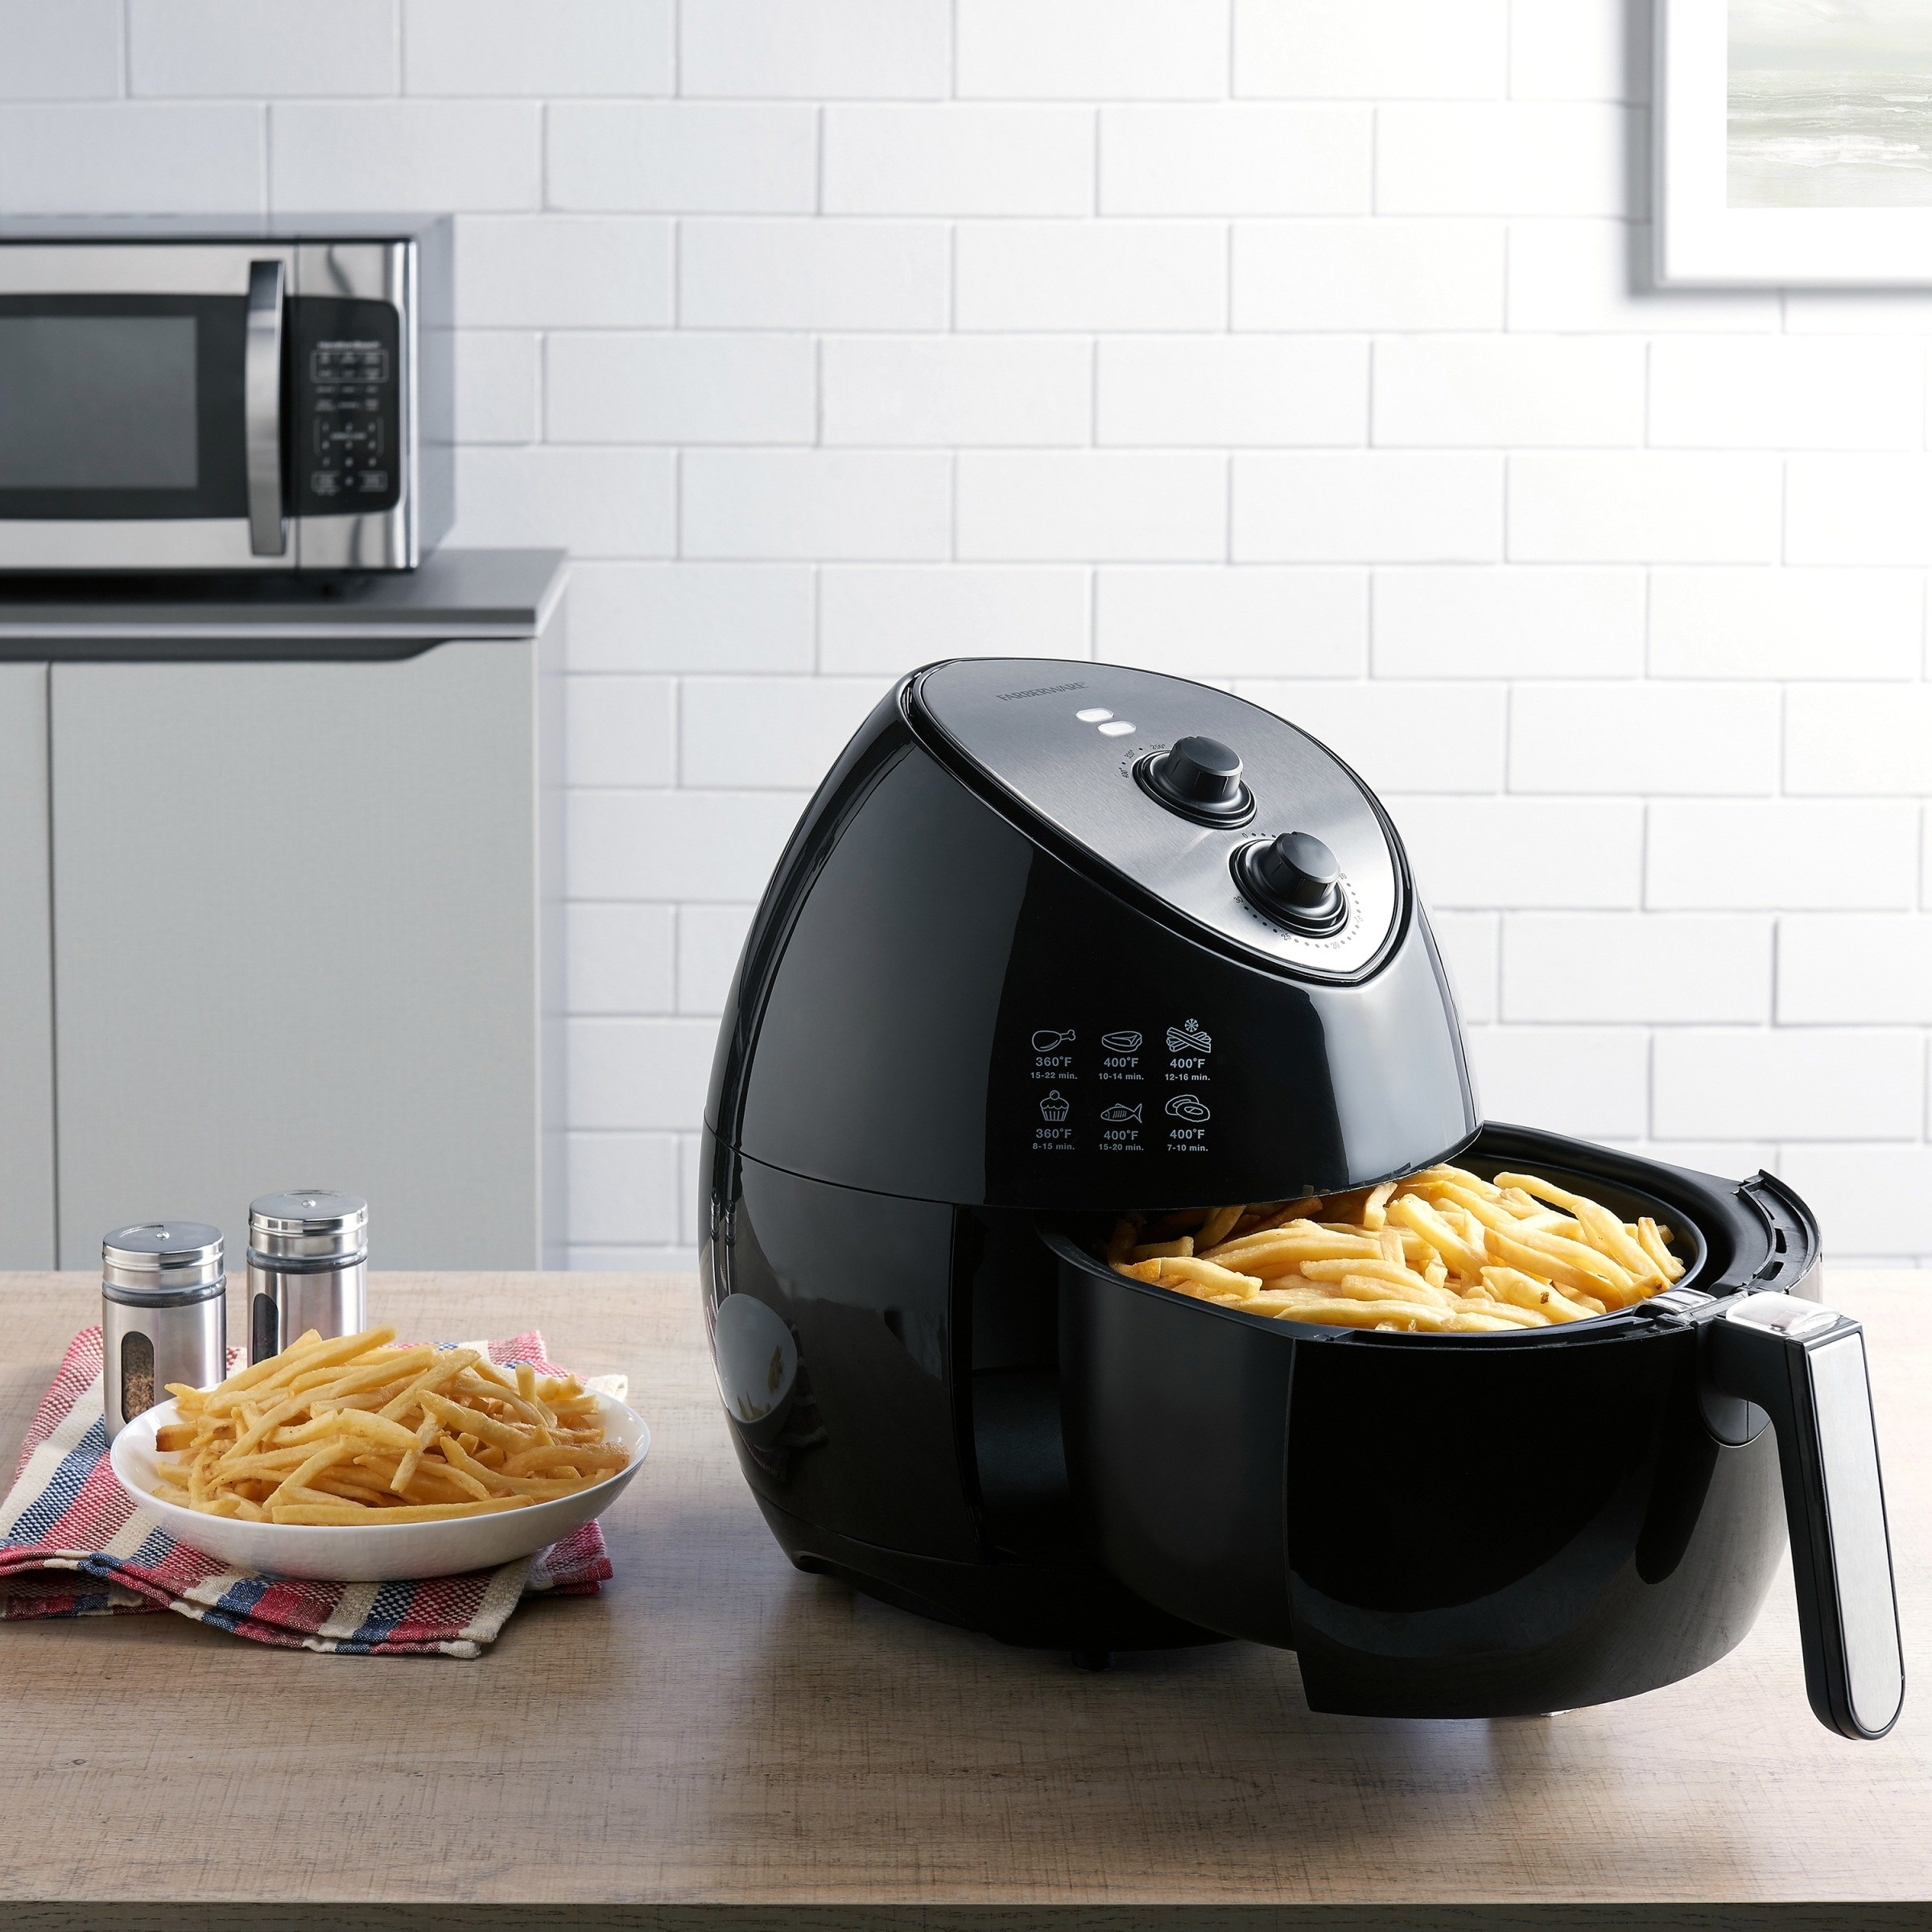 The air fryer partially opened to show a basket of fries